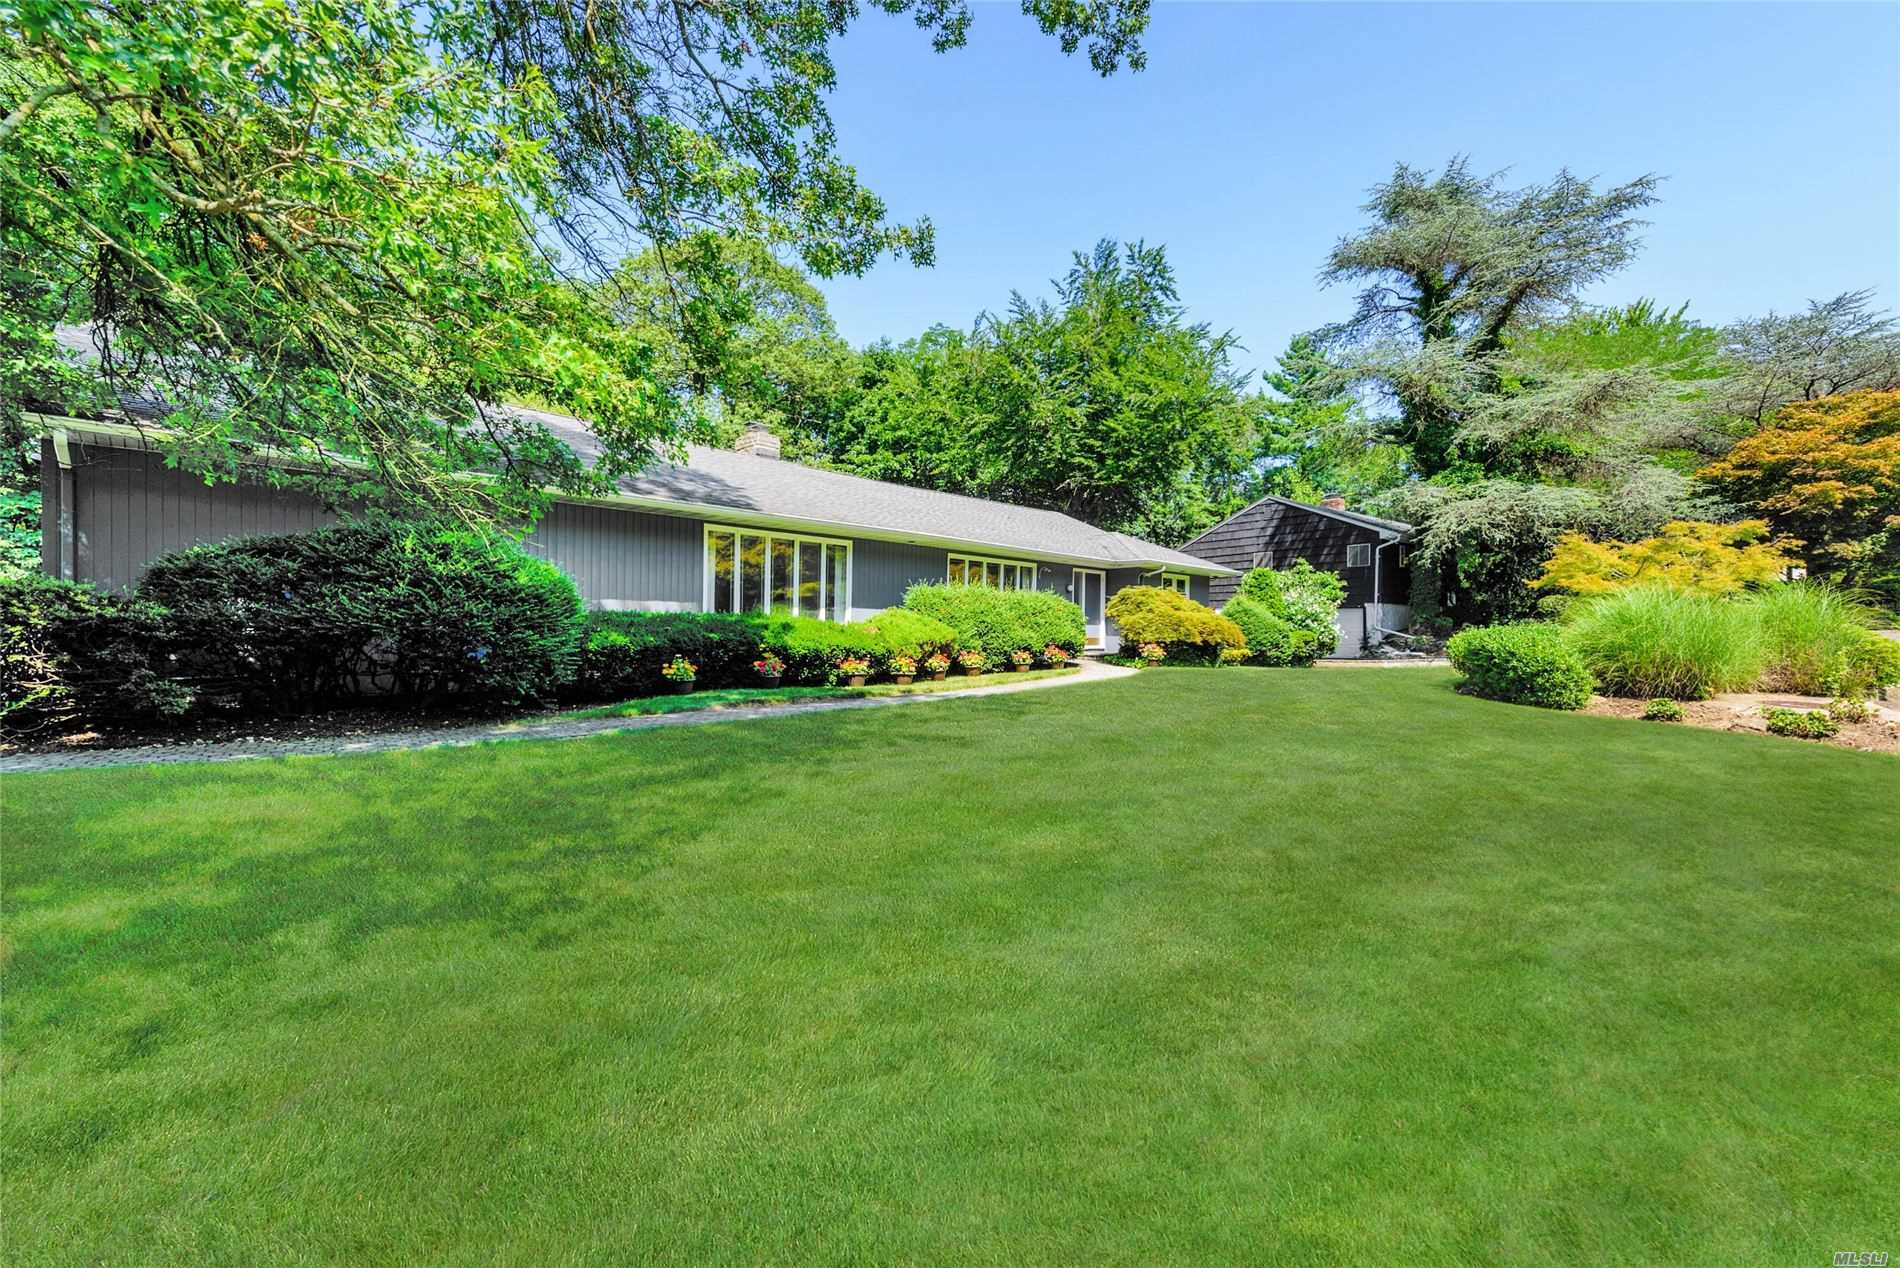 100 Mimosa Dr - East Hills, New York